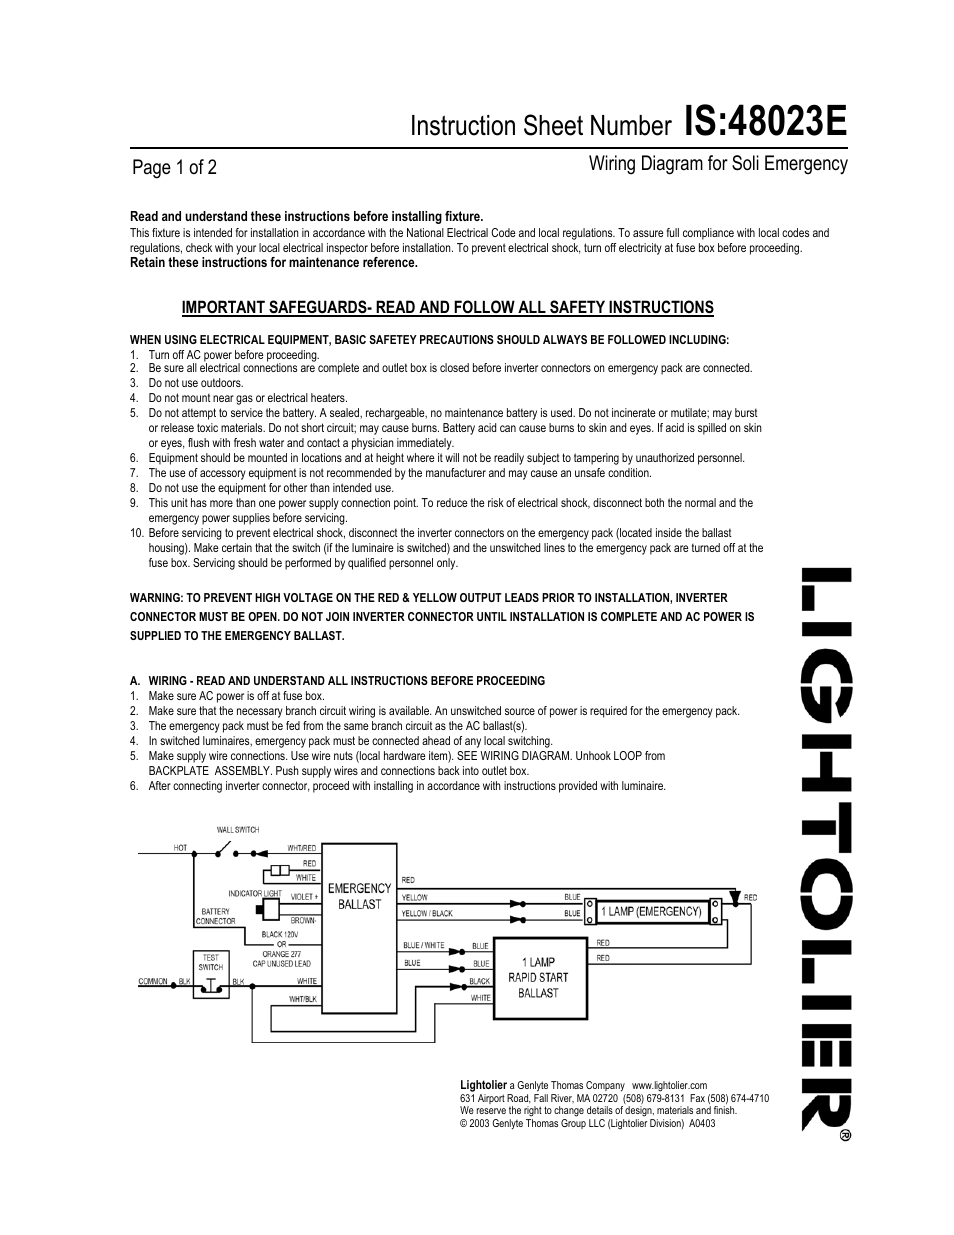 lightolier wiring diagram for soli emergency 48023e user manual 2 rh manualsdir com 3-Way Switch Wiring Diagram Simple Wiring Diagrams